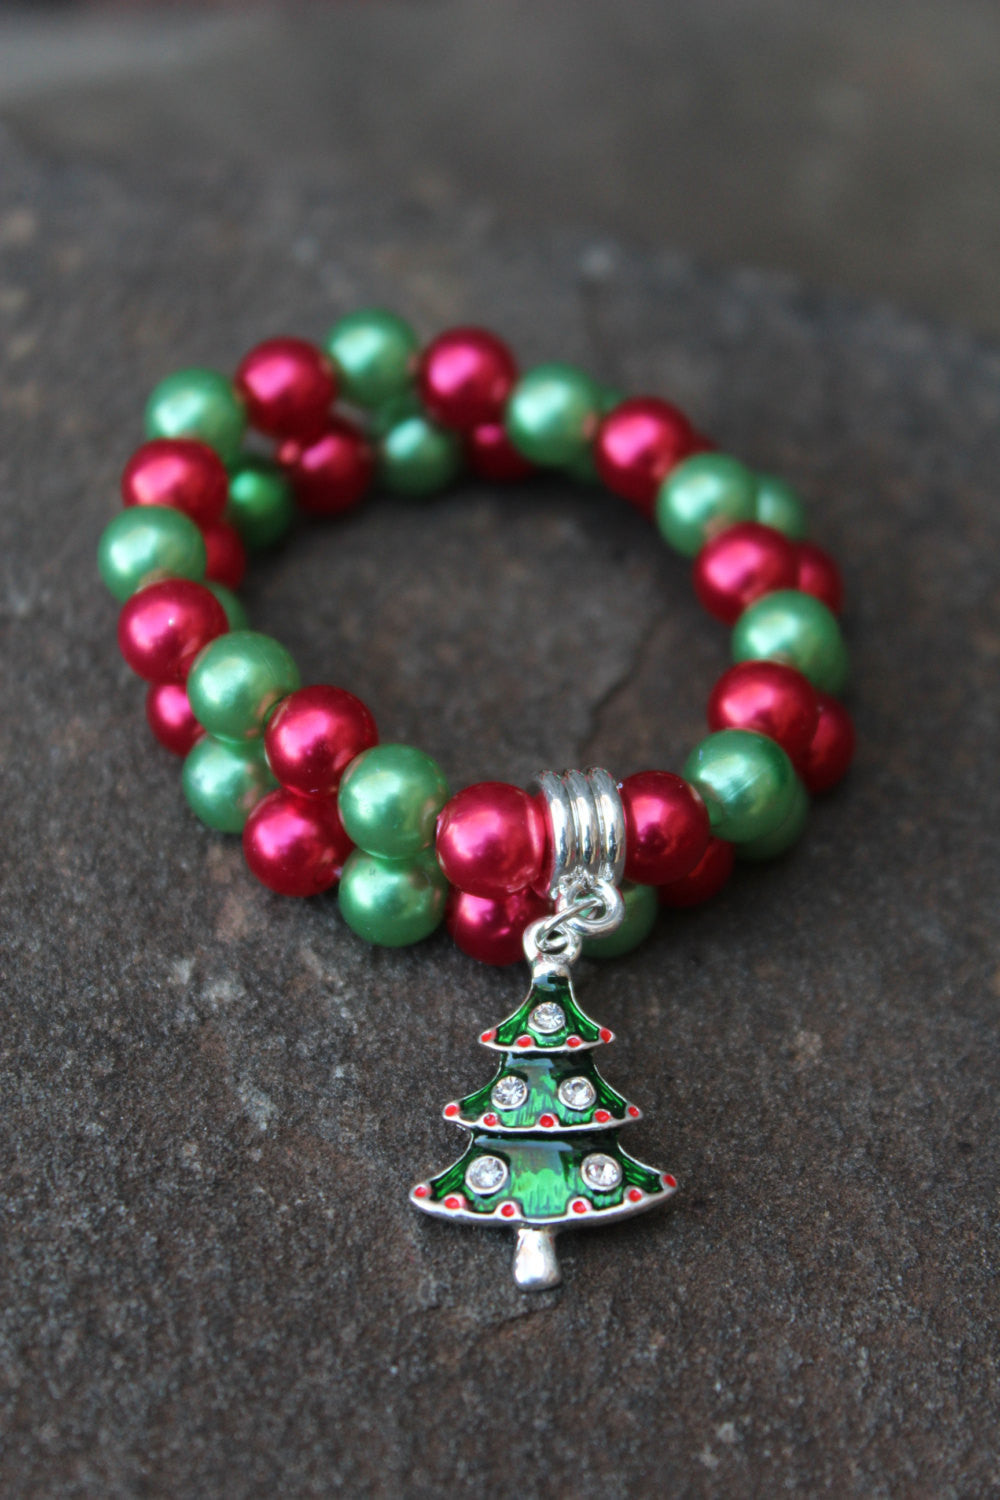 Stackable Holiday Bracelets with Christmas Tree Variation(Multiple Color Options!) - JTJ15803